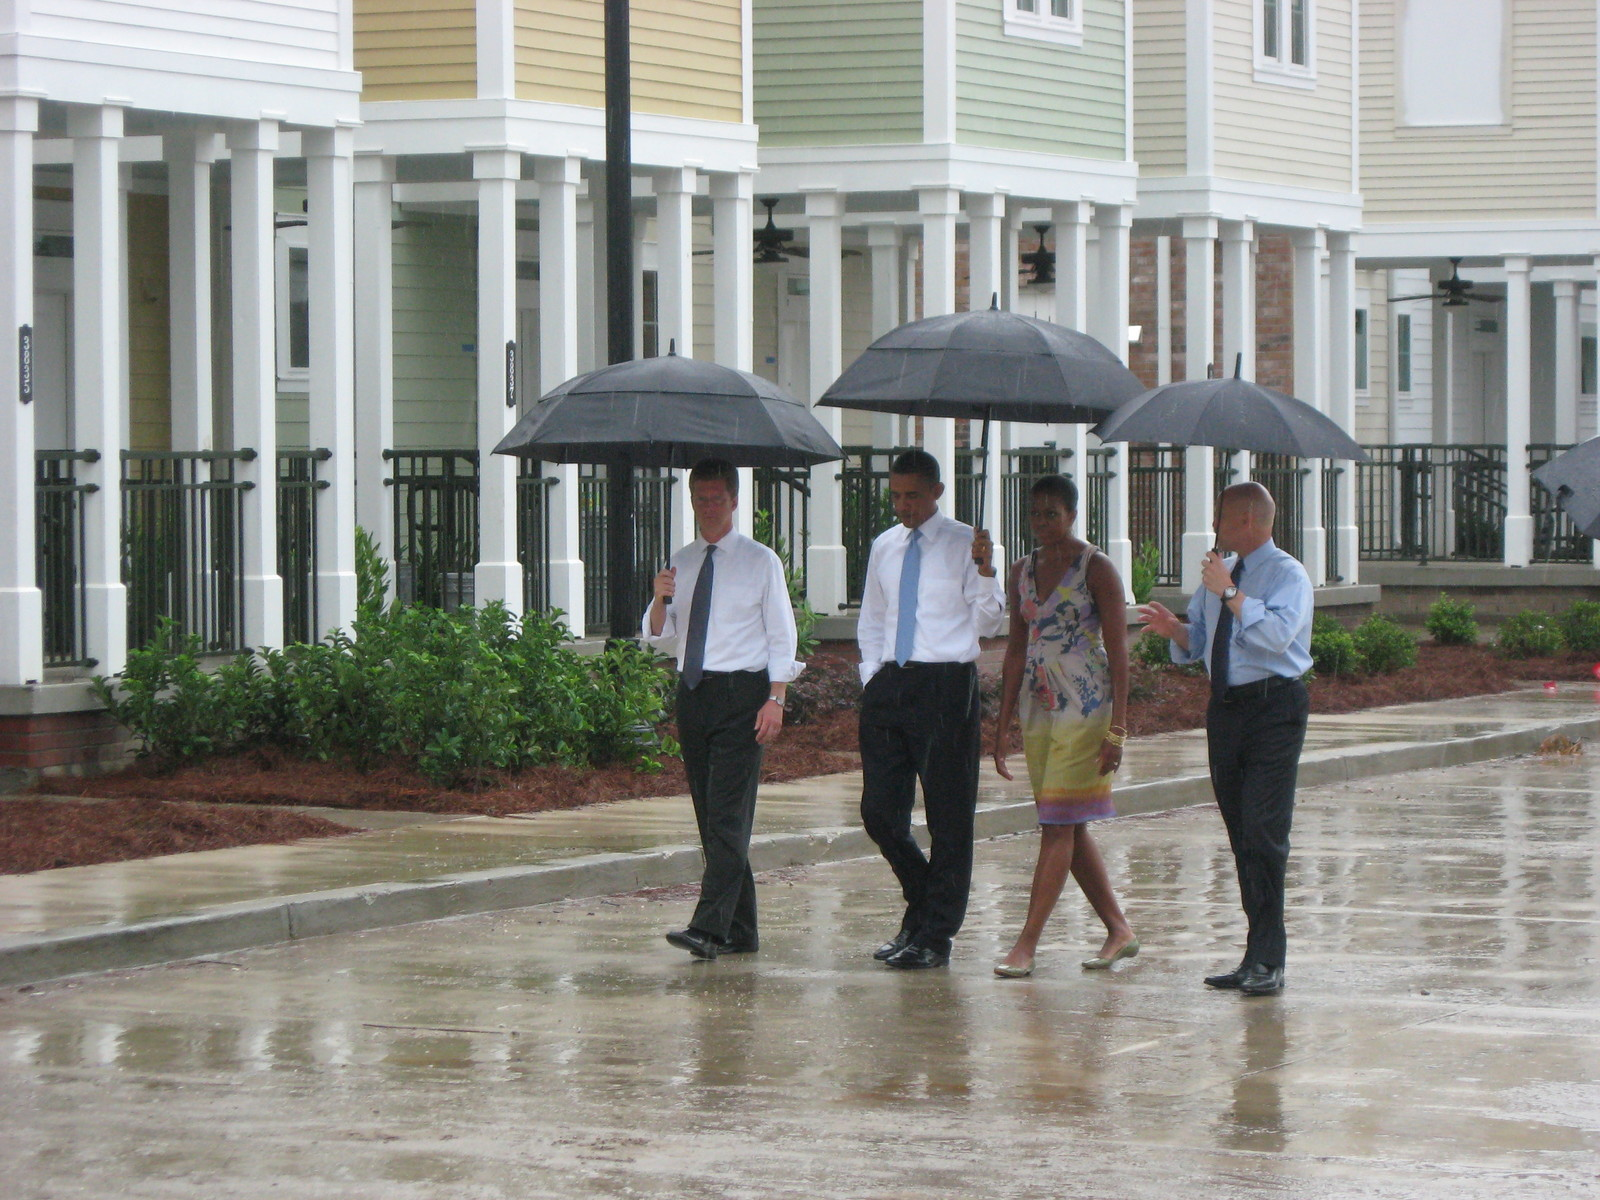 Secretary Shaun Donovan in New Orleans, Louisiana,  [where he joined] President Barack Obama, [First Lady Michelle Obama, and New Orleans Mayor Mitch Landrieu for a tour of the Columbia Parc Housing Development, and events marking the]  fifth anniversary of Hurricane Katrina